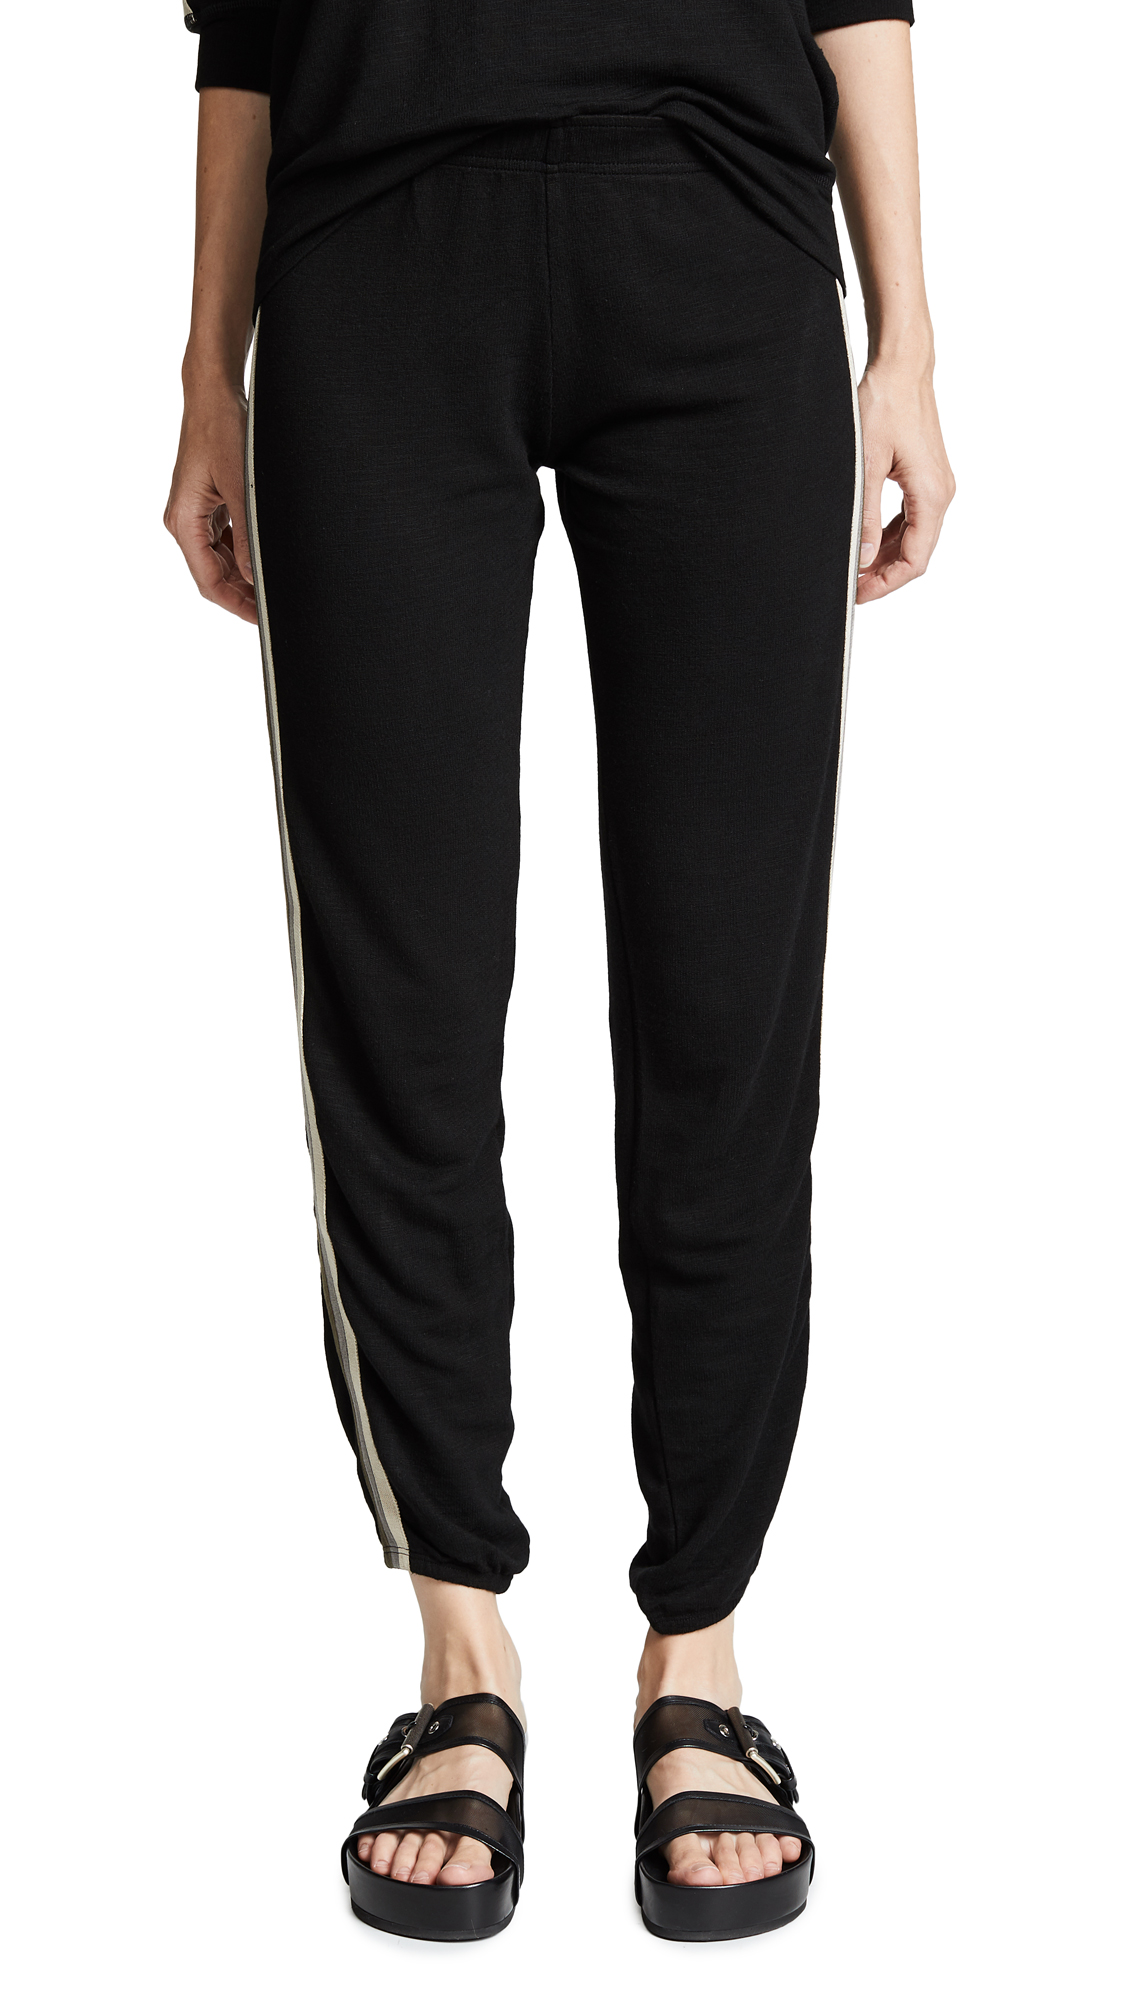 Supersoft Elastic Waist Sweats With Neutral Stripes in Black